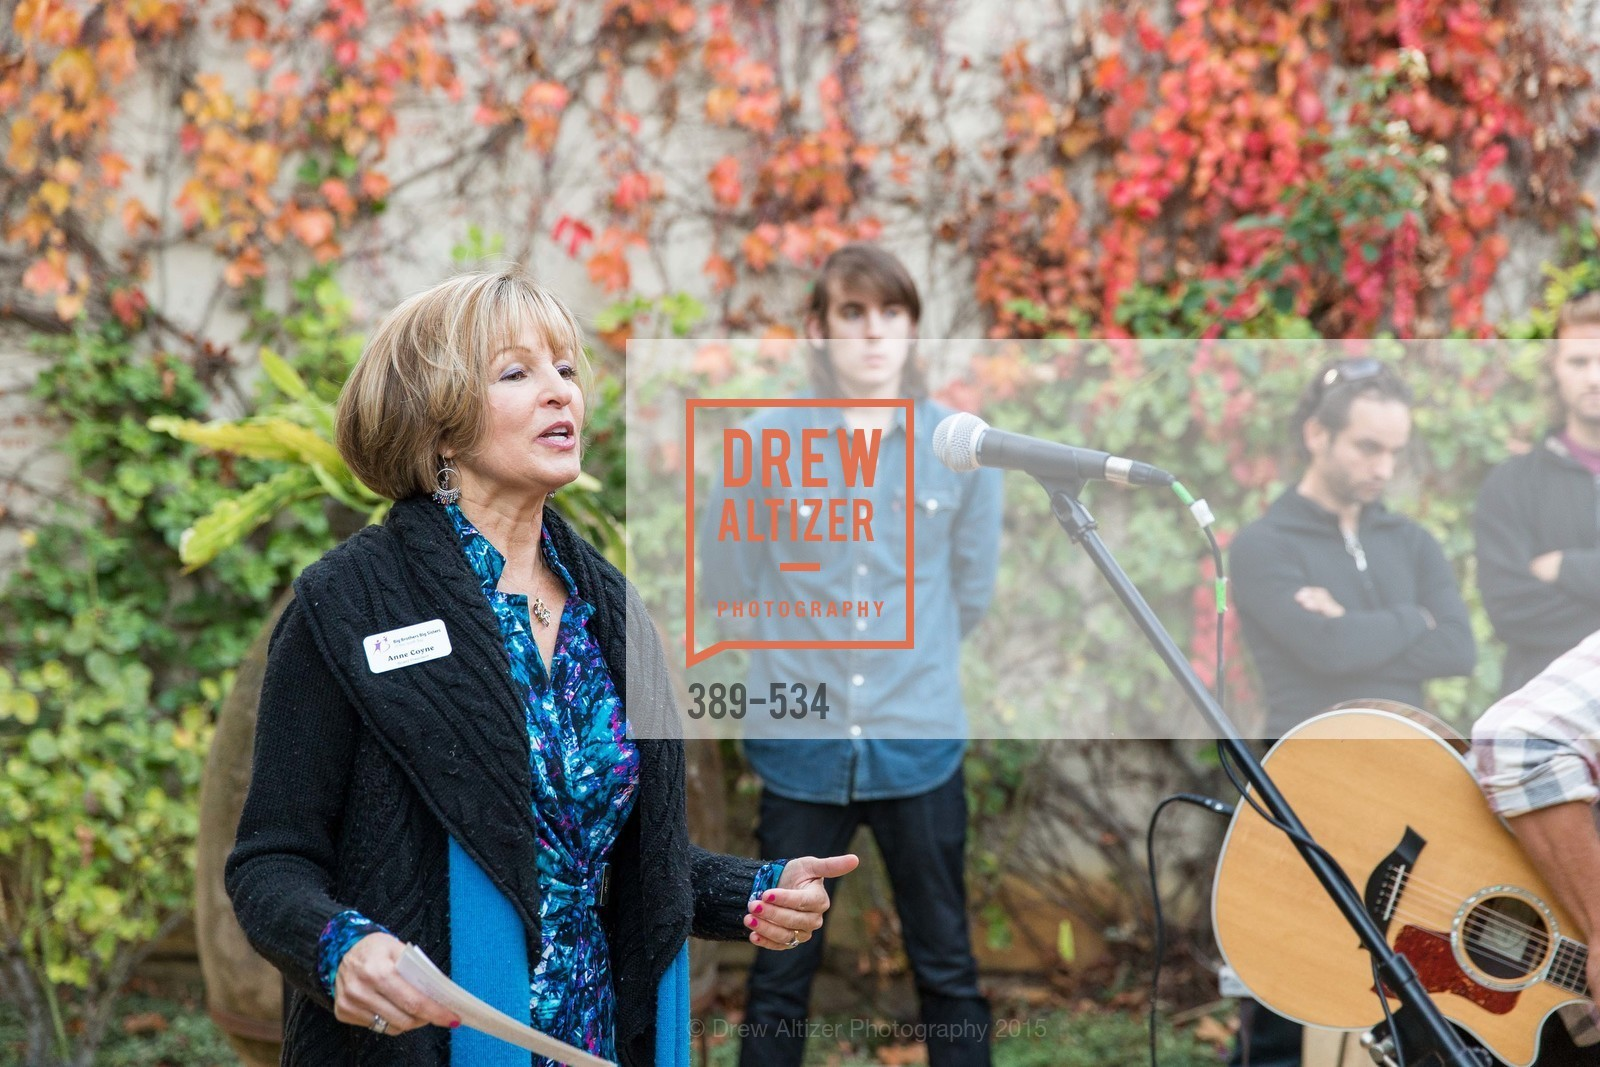 Anne Coyne, Perfecting Pairings - Food, Wine and Stories, Chateau St Jean, Kenwood, November 14th, 2015,Drew Altizer, Drew Altizer Photography, full-service agency, private events, San Francisco photographer, photographer california